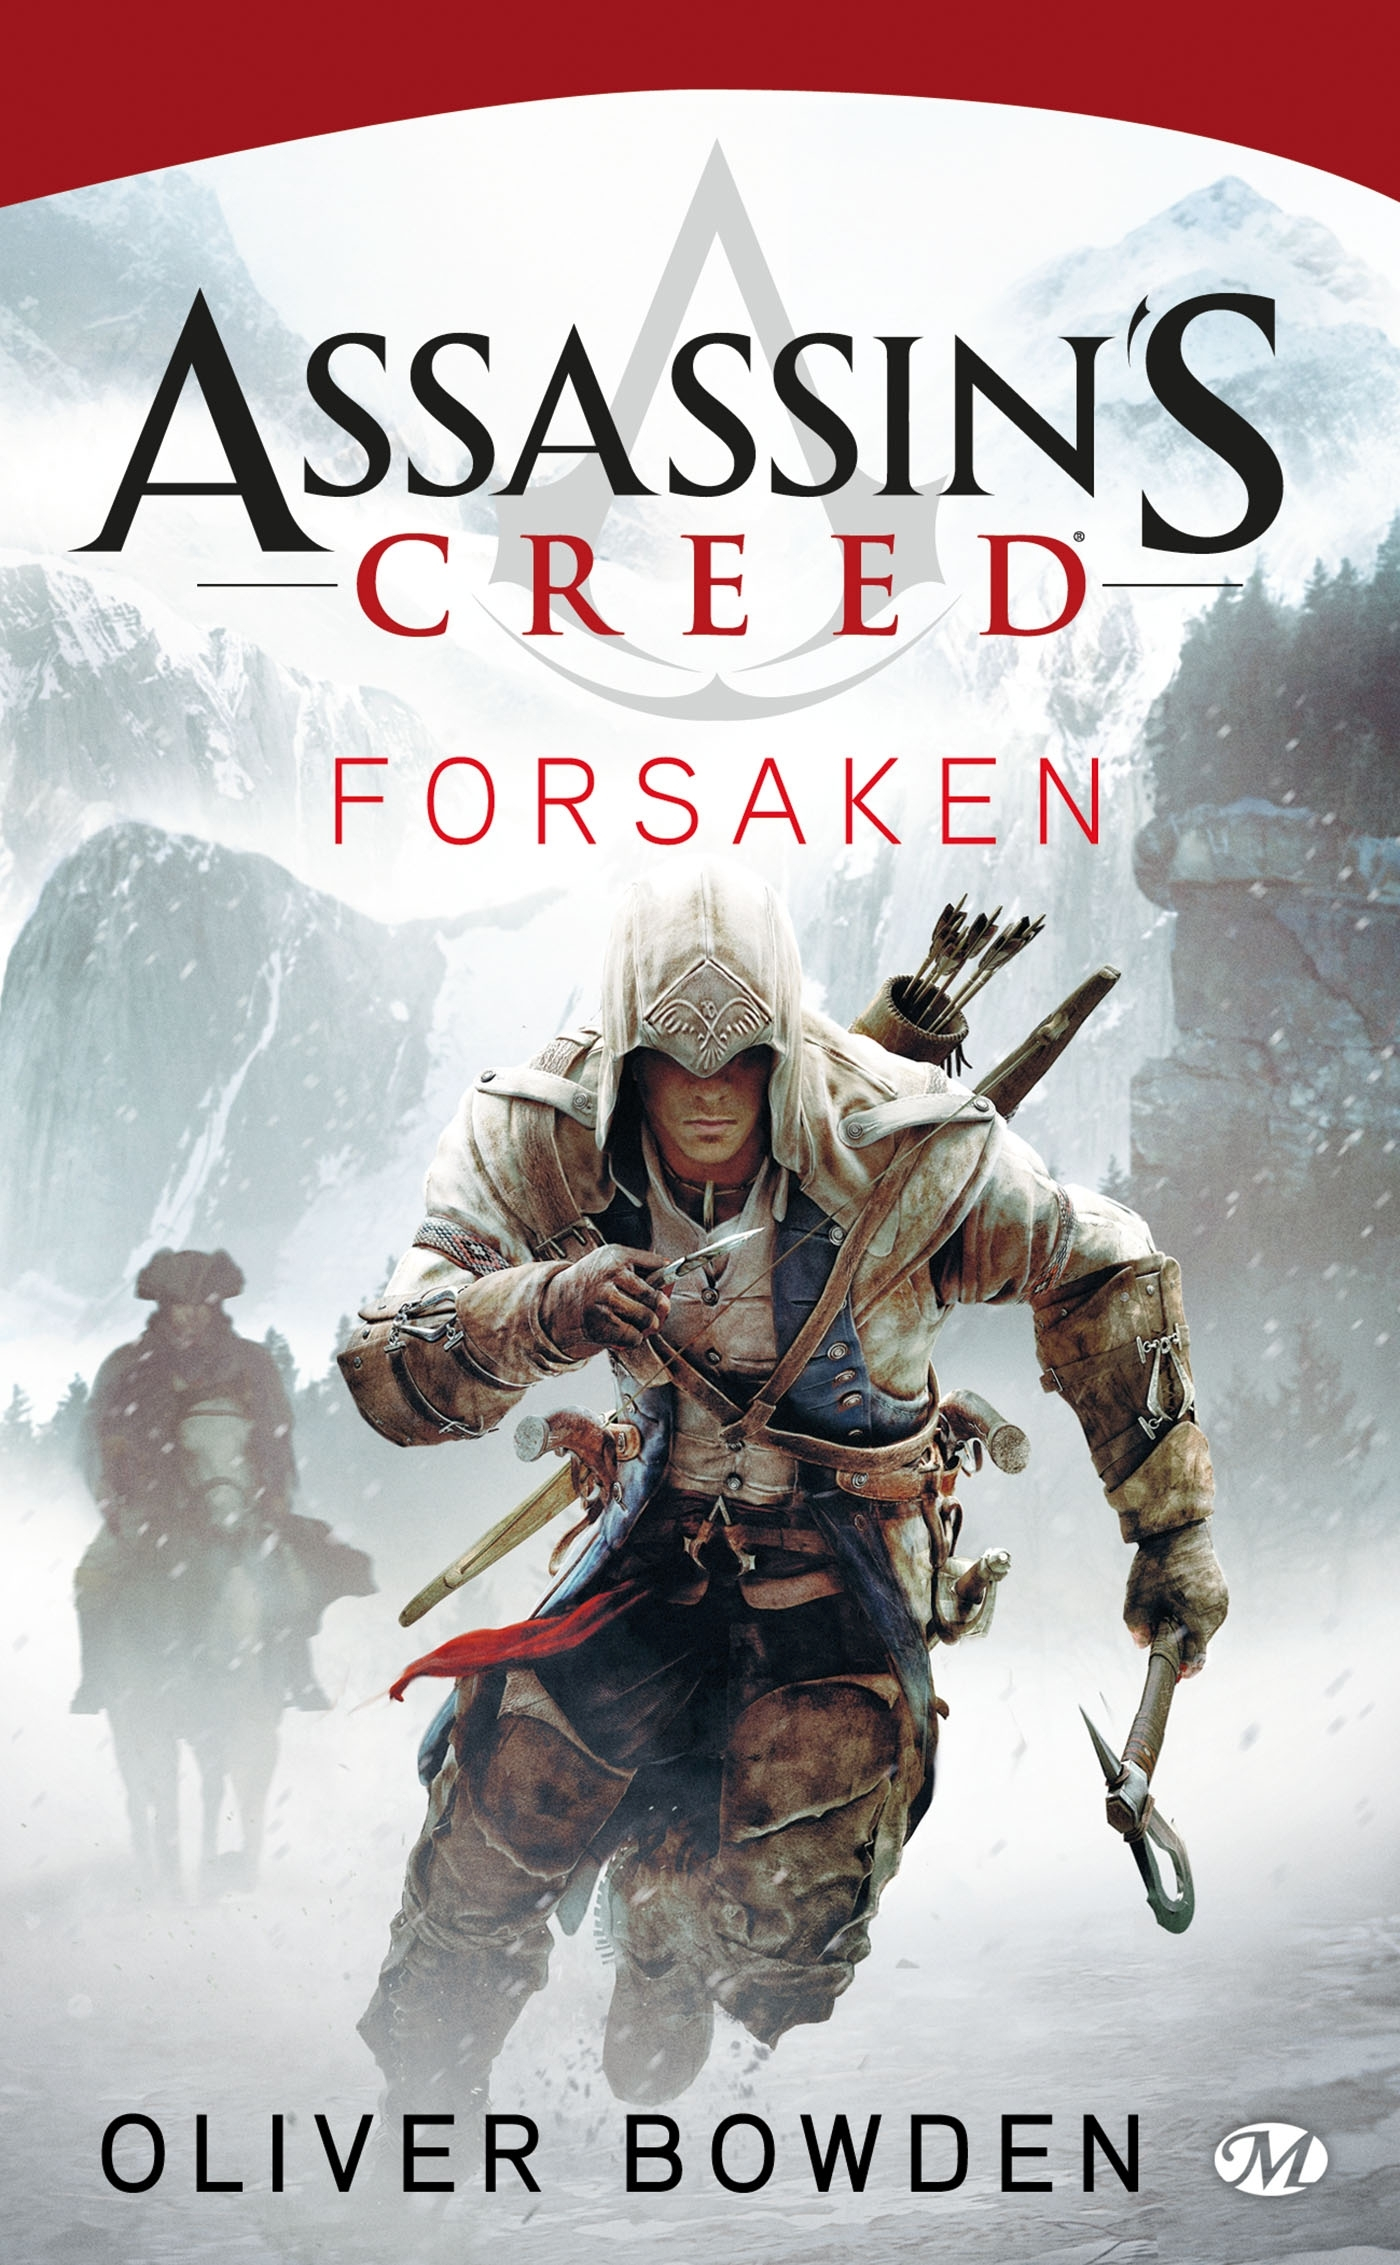 ASSASSIN'S CREED, T5 : ASSASSIN'S CREED : FORSAKEN